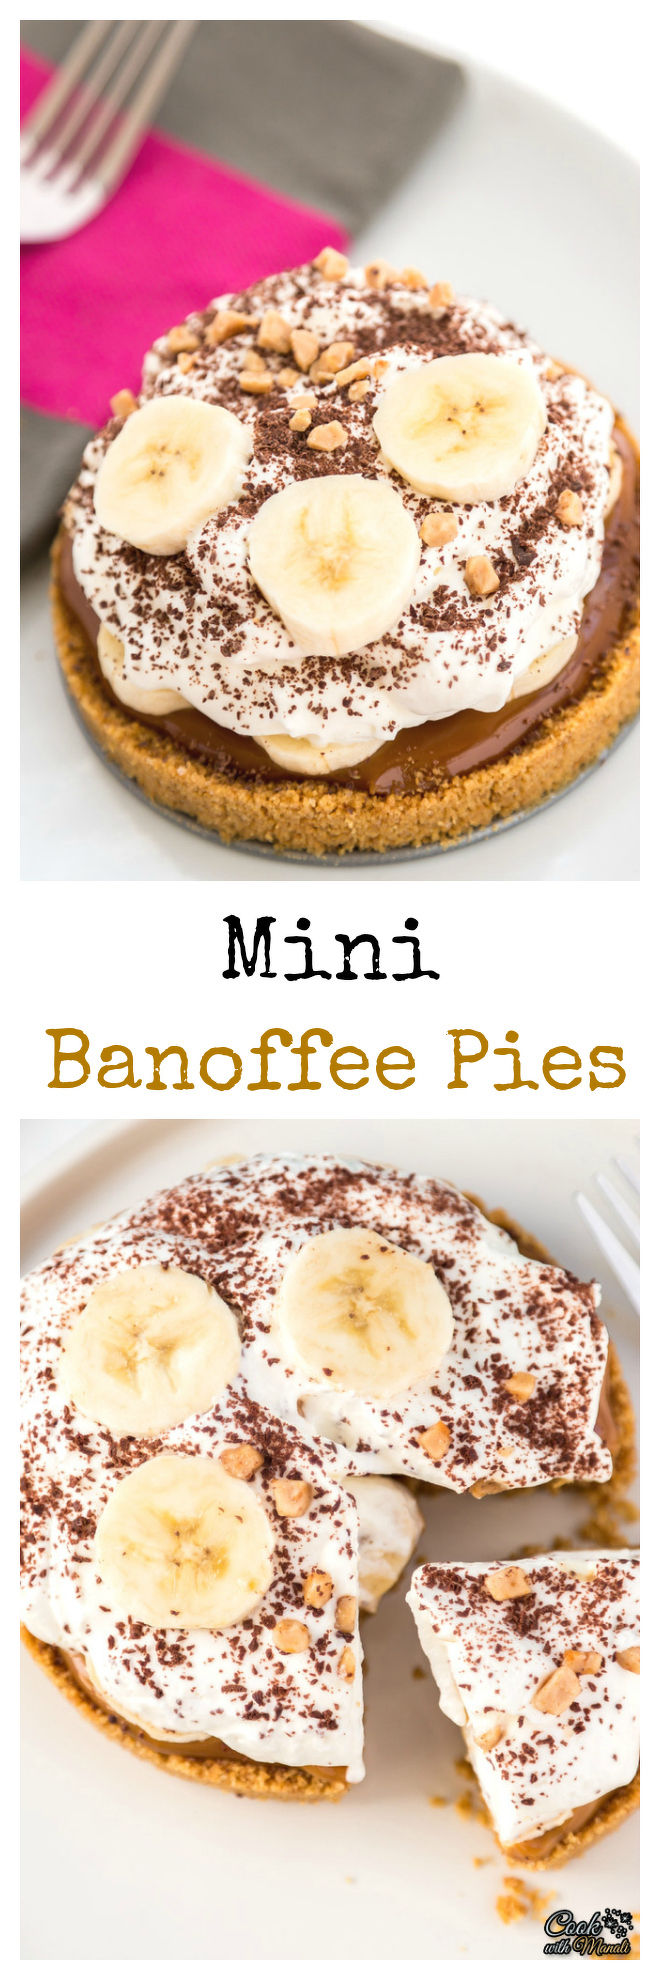 Mini Banoffee Pies Collage-nocwm